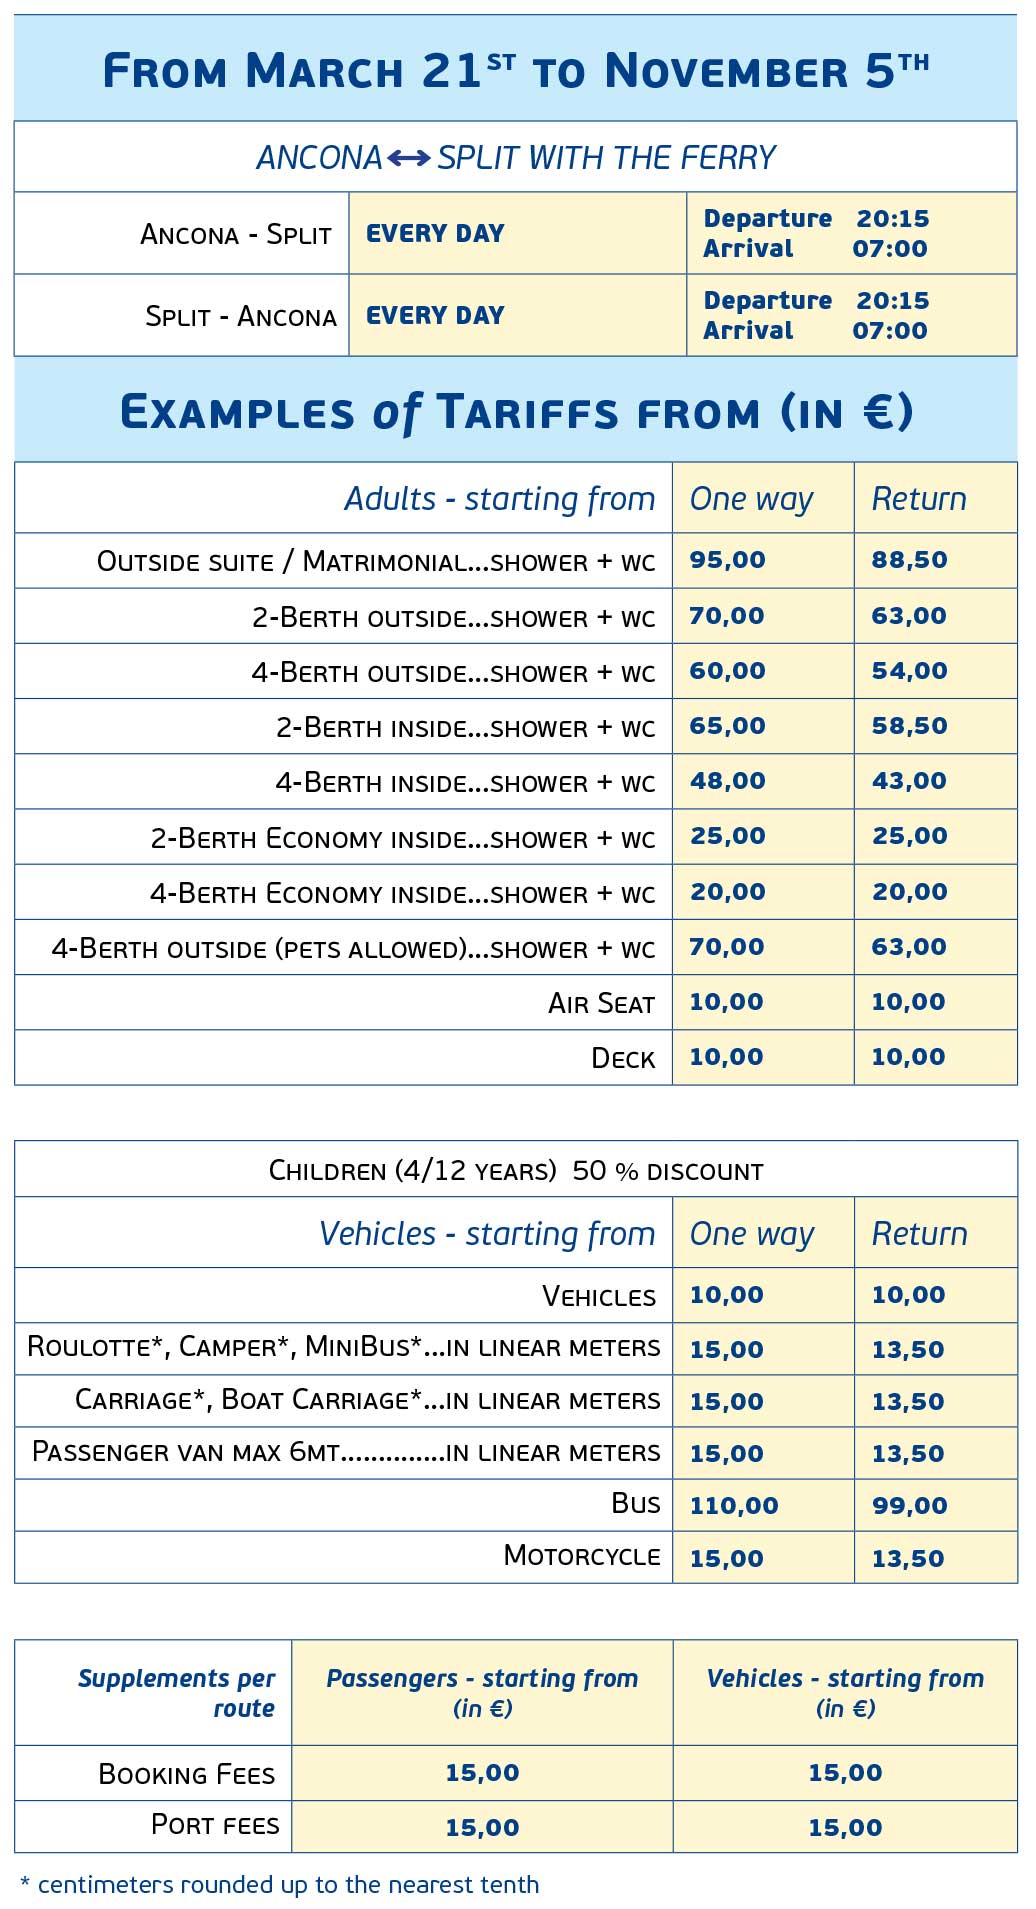 Ancona - Split Ferries- Prices for 2016: